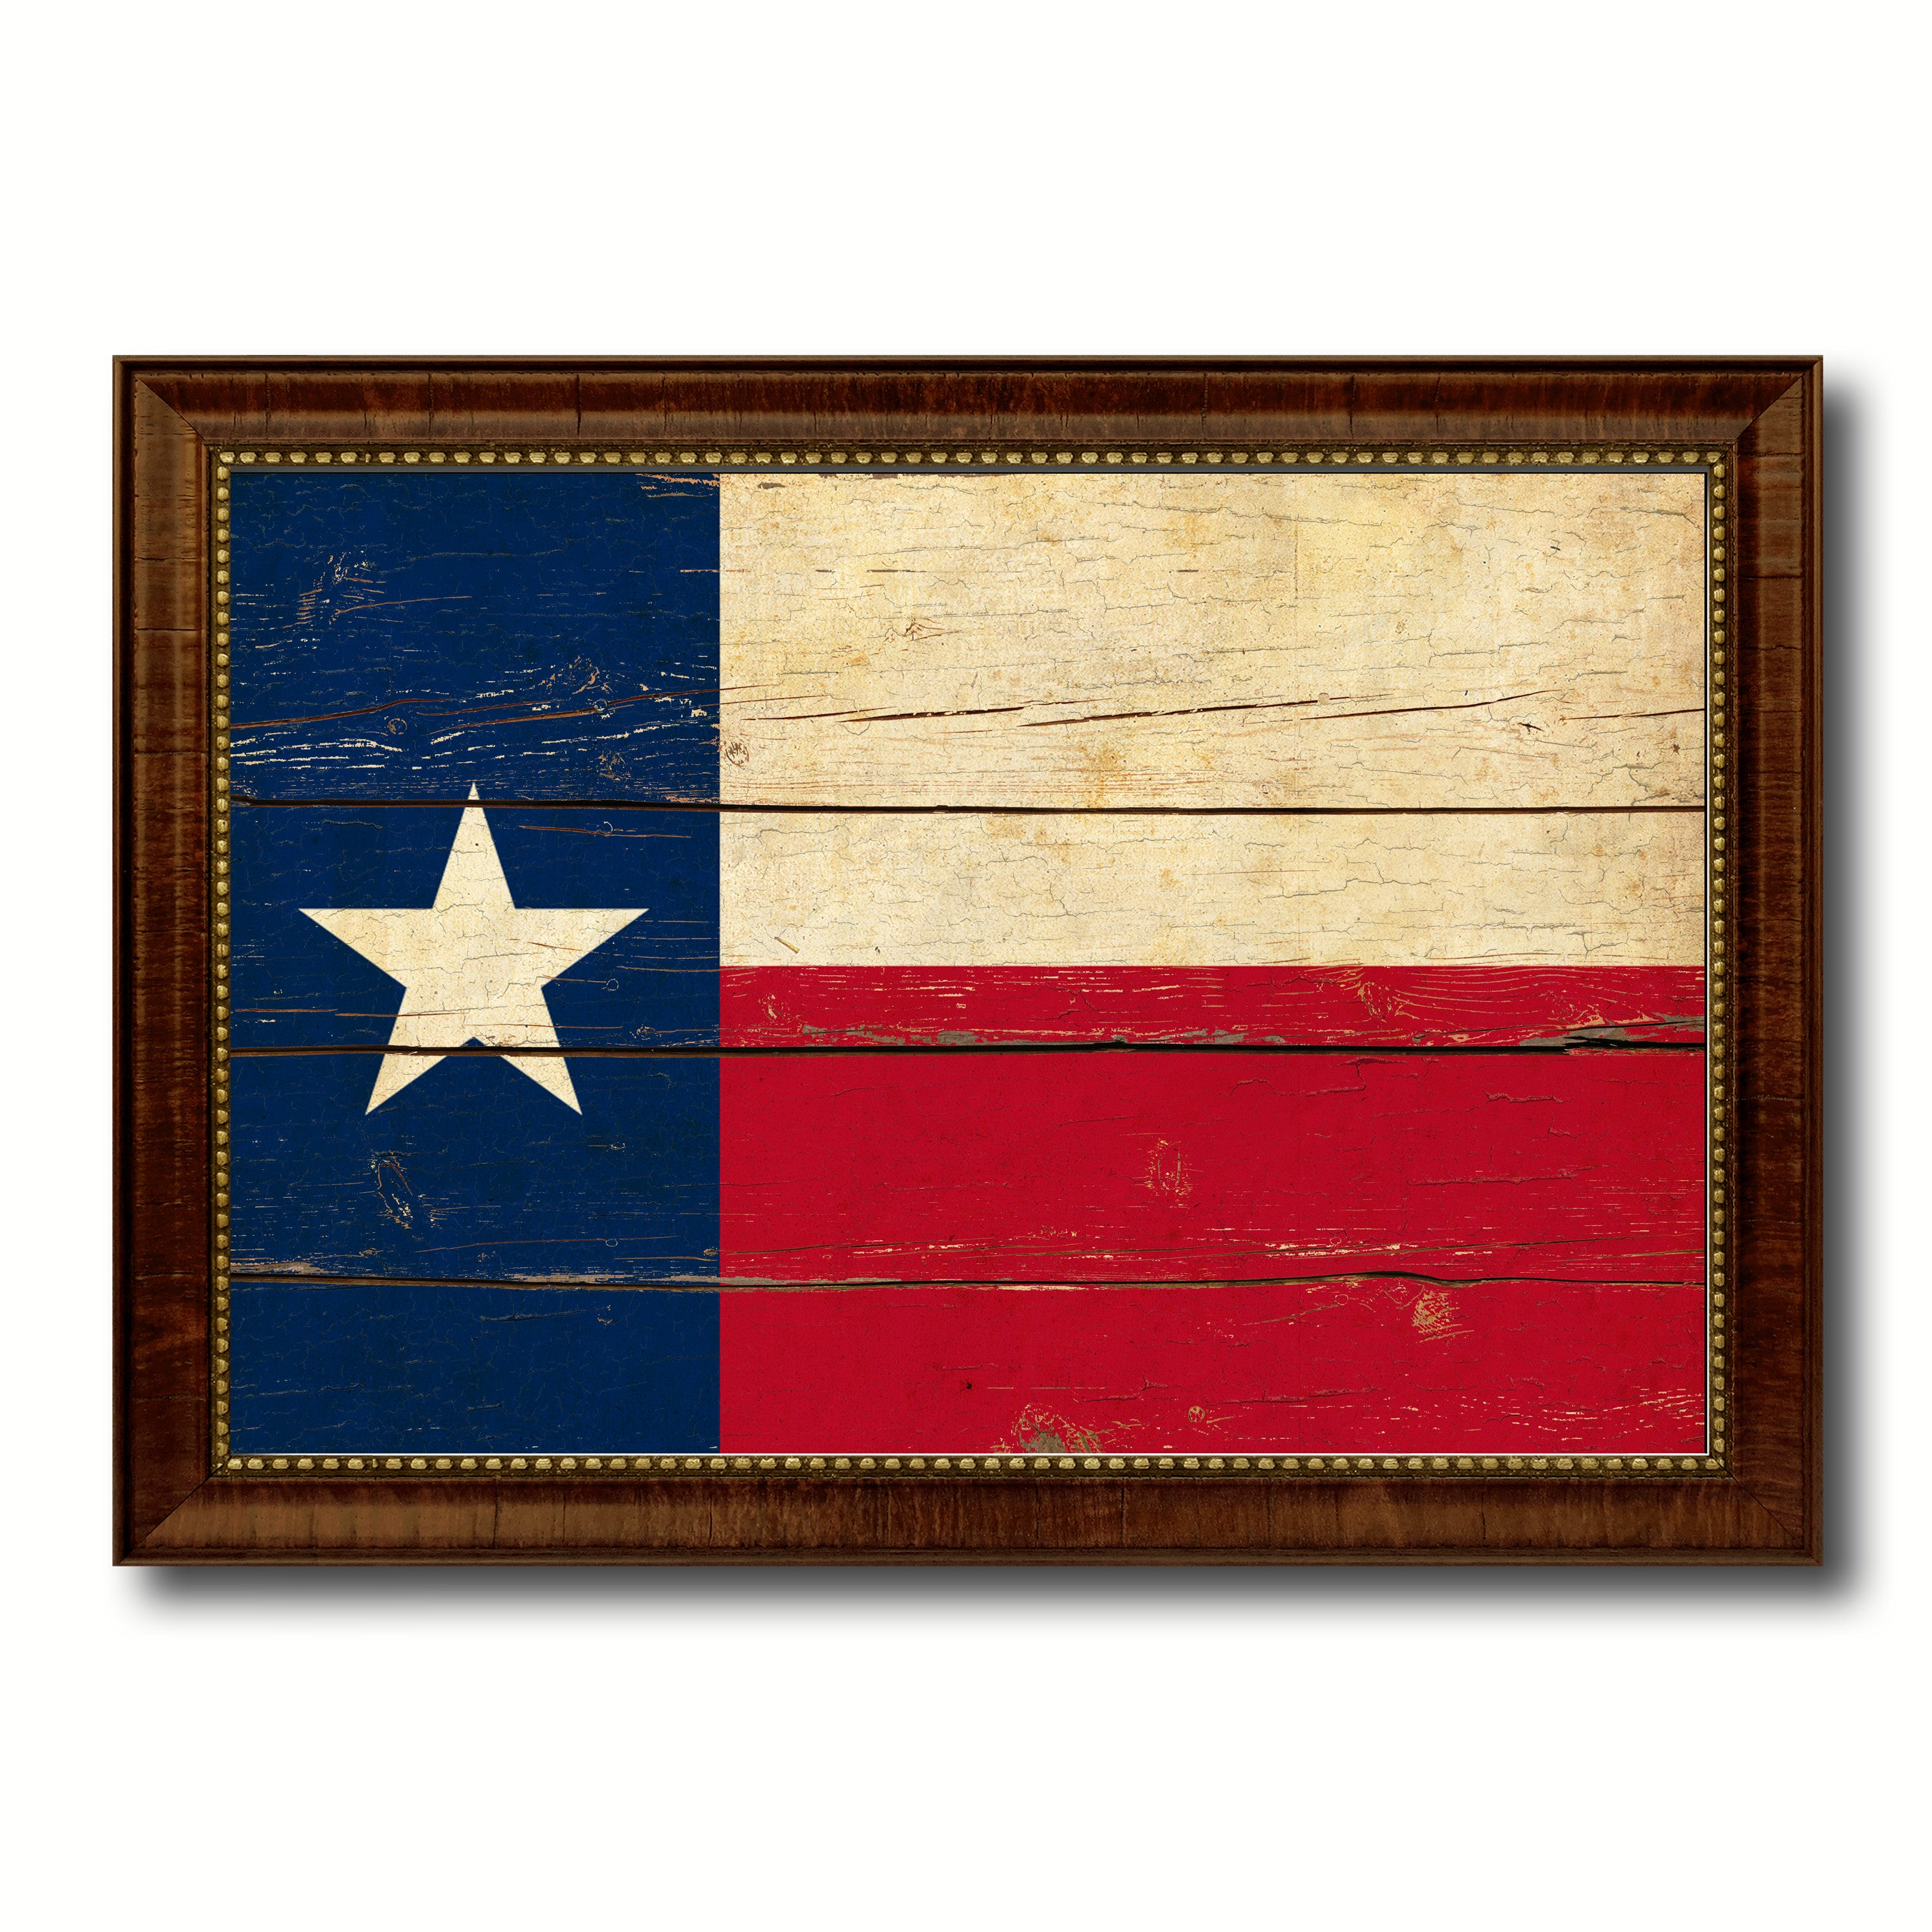 bg frame state artwork cave vintage decor flag art print black products canvas gifts wall home man brown collectible with texas decoration picture